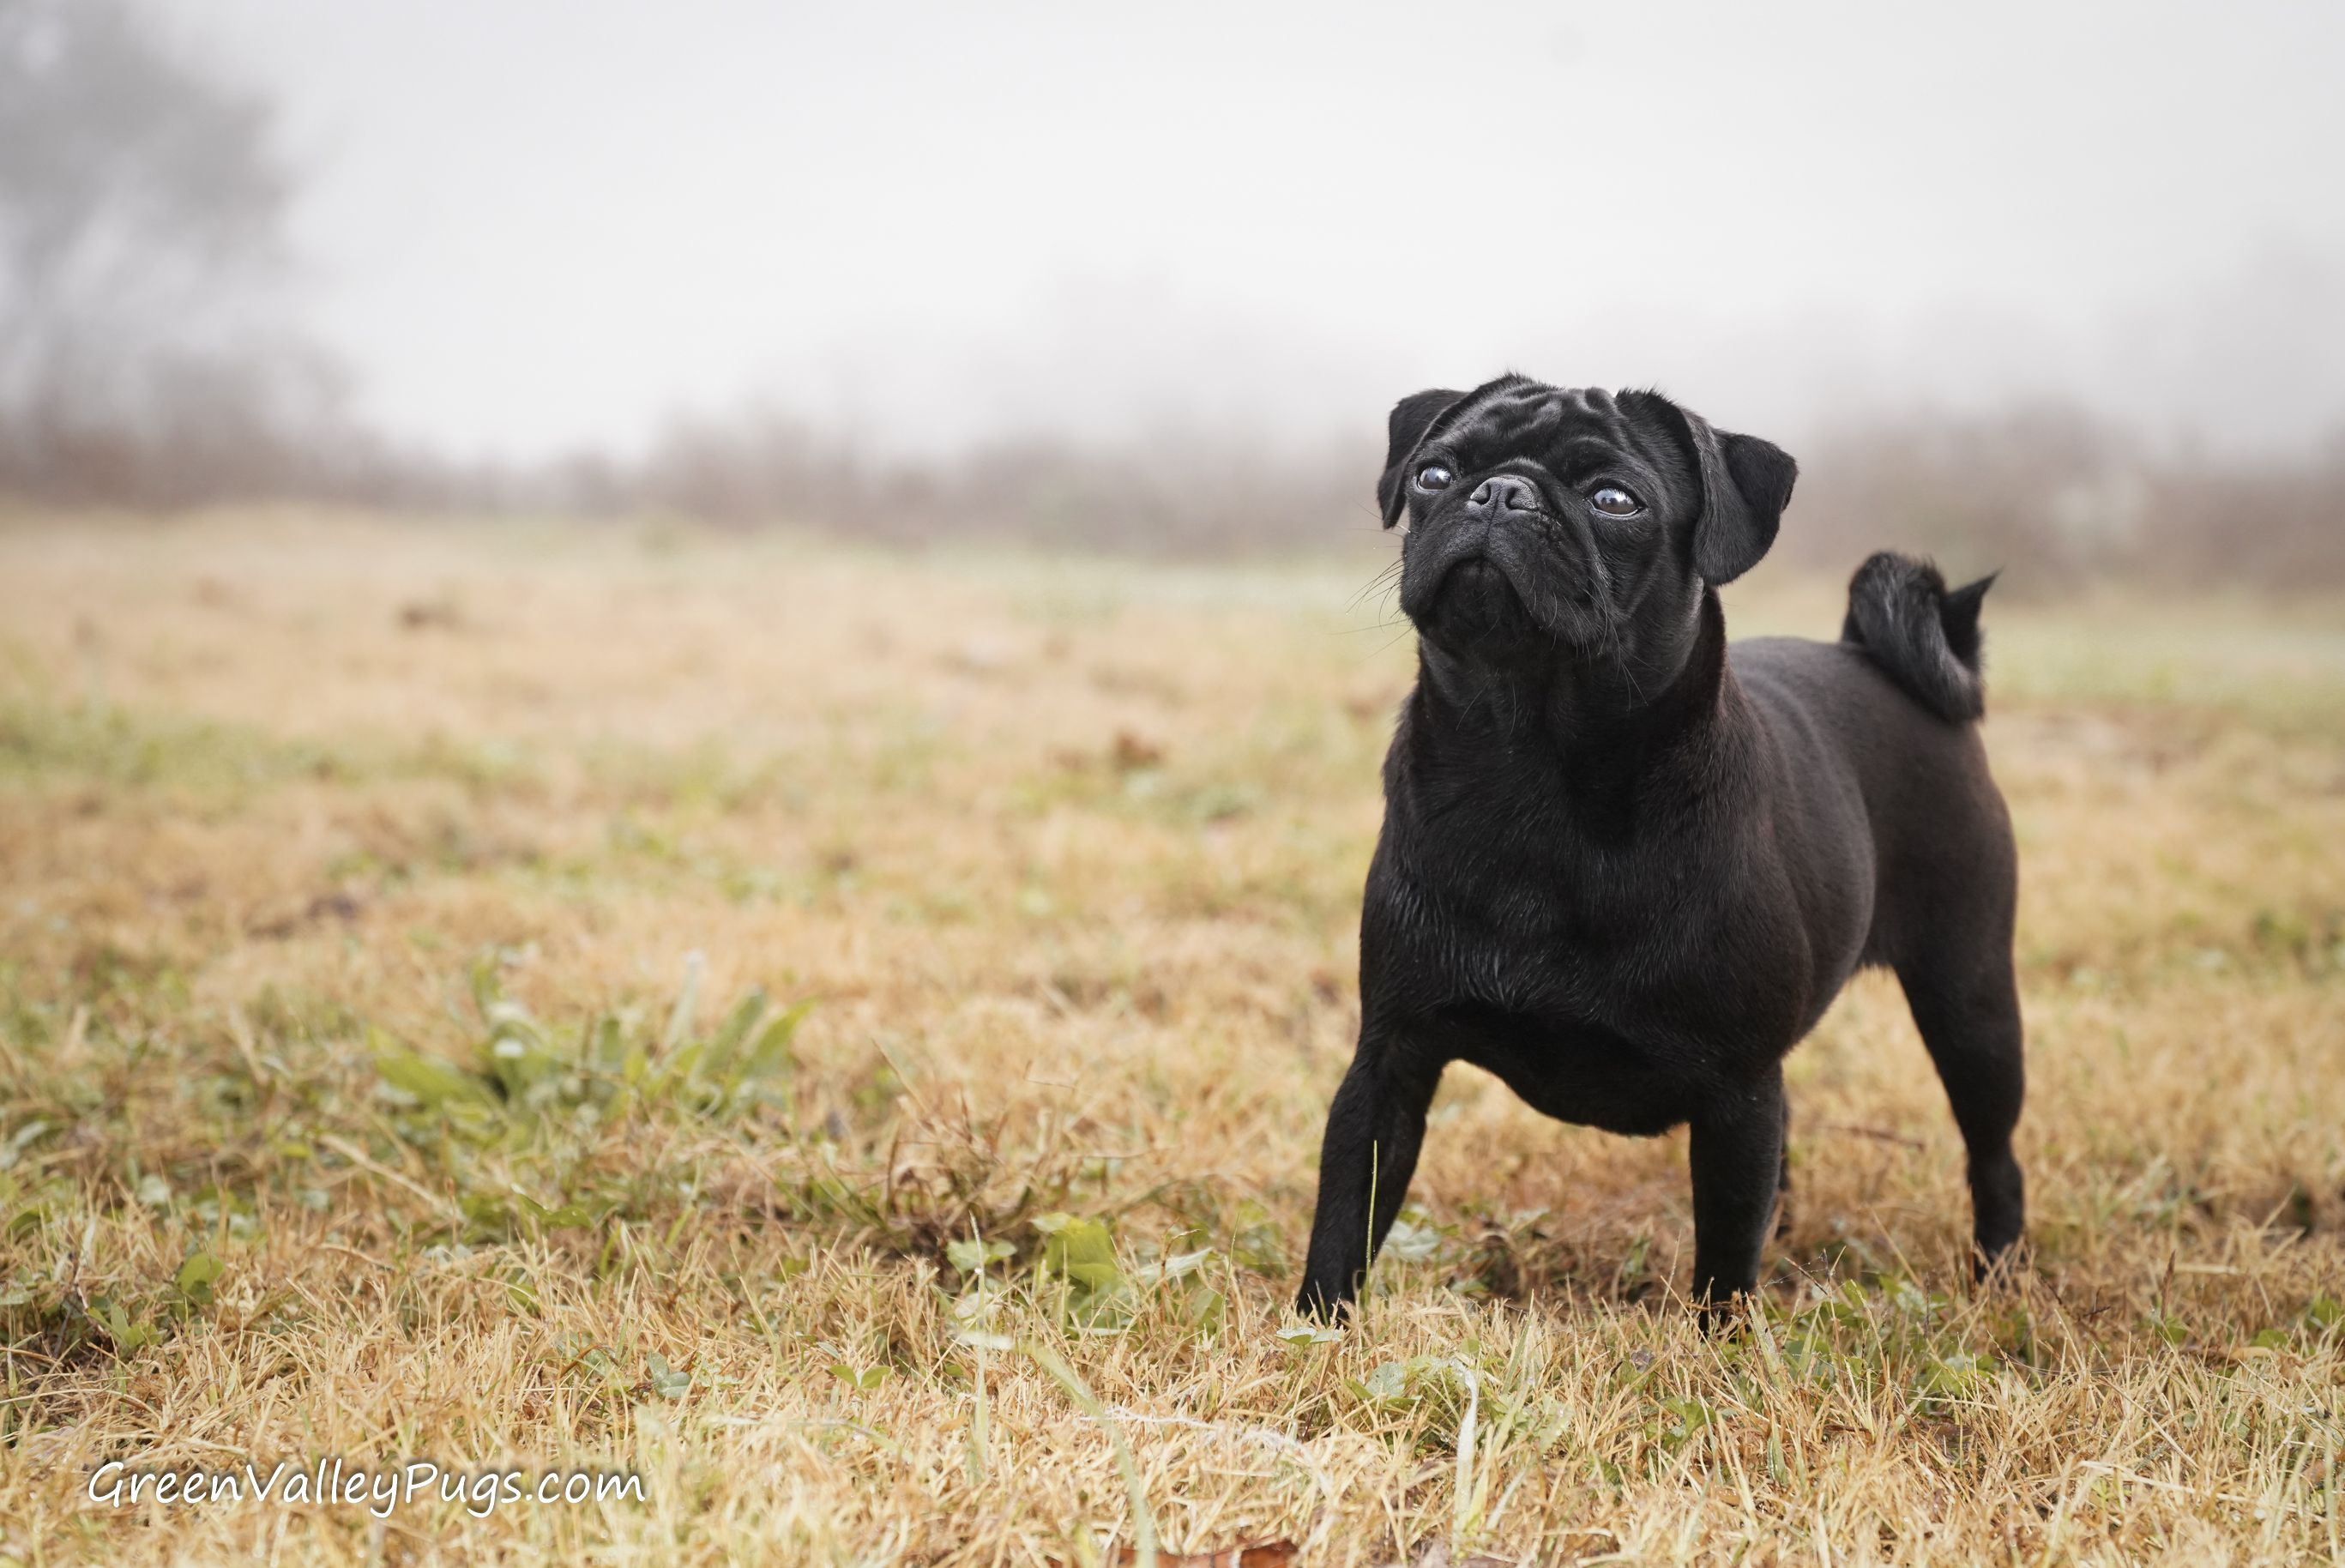 Green Valley Pugs Is Located In Northwest Arkansas We Lovingly